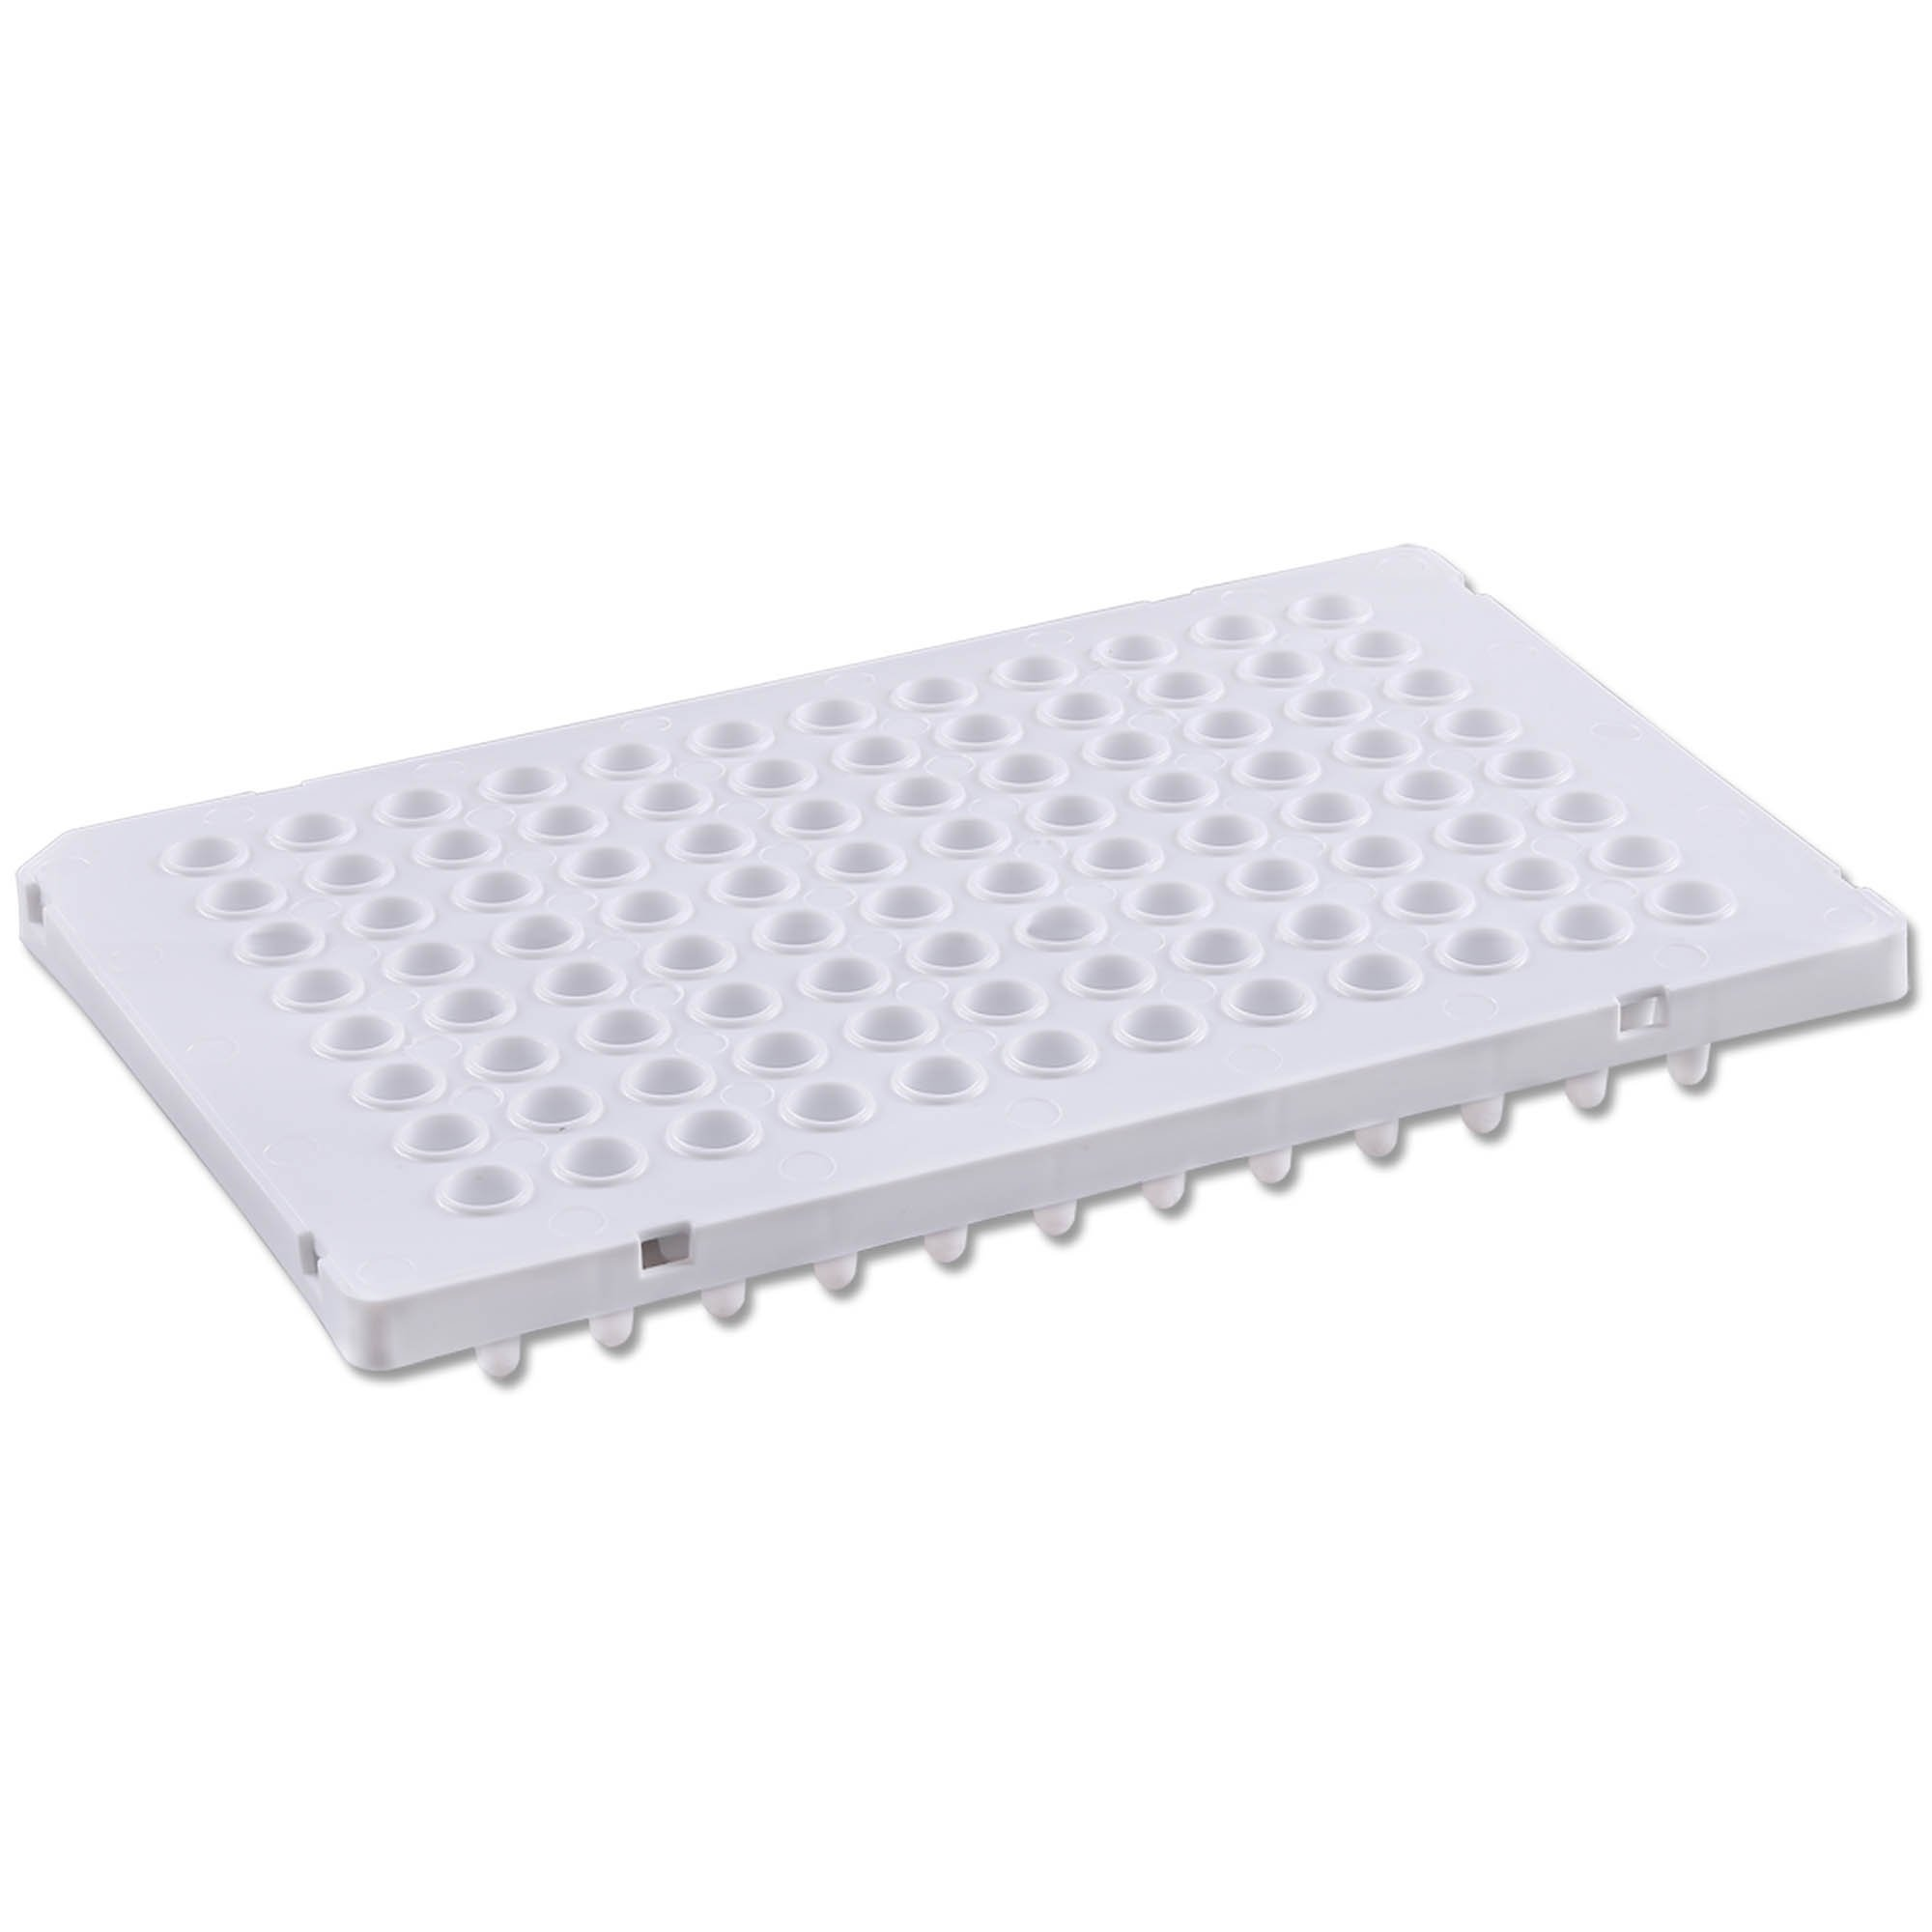 PureAmp Low Profile/Fast 96-Well x 0.1mL PCR Plates - Semi Skirted, White (10 Packs of 50 per Pack)